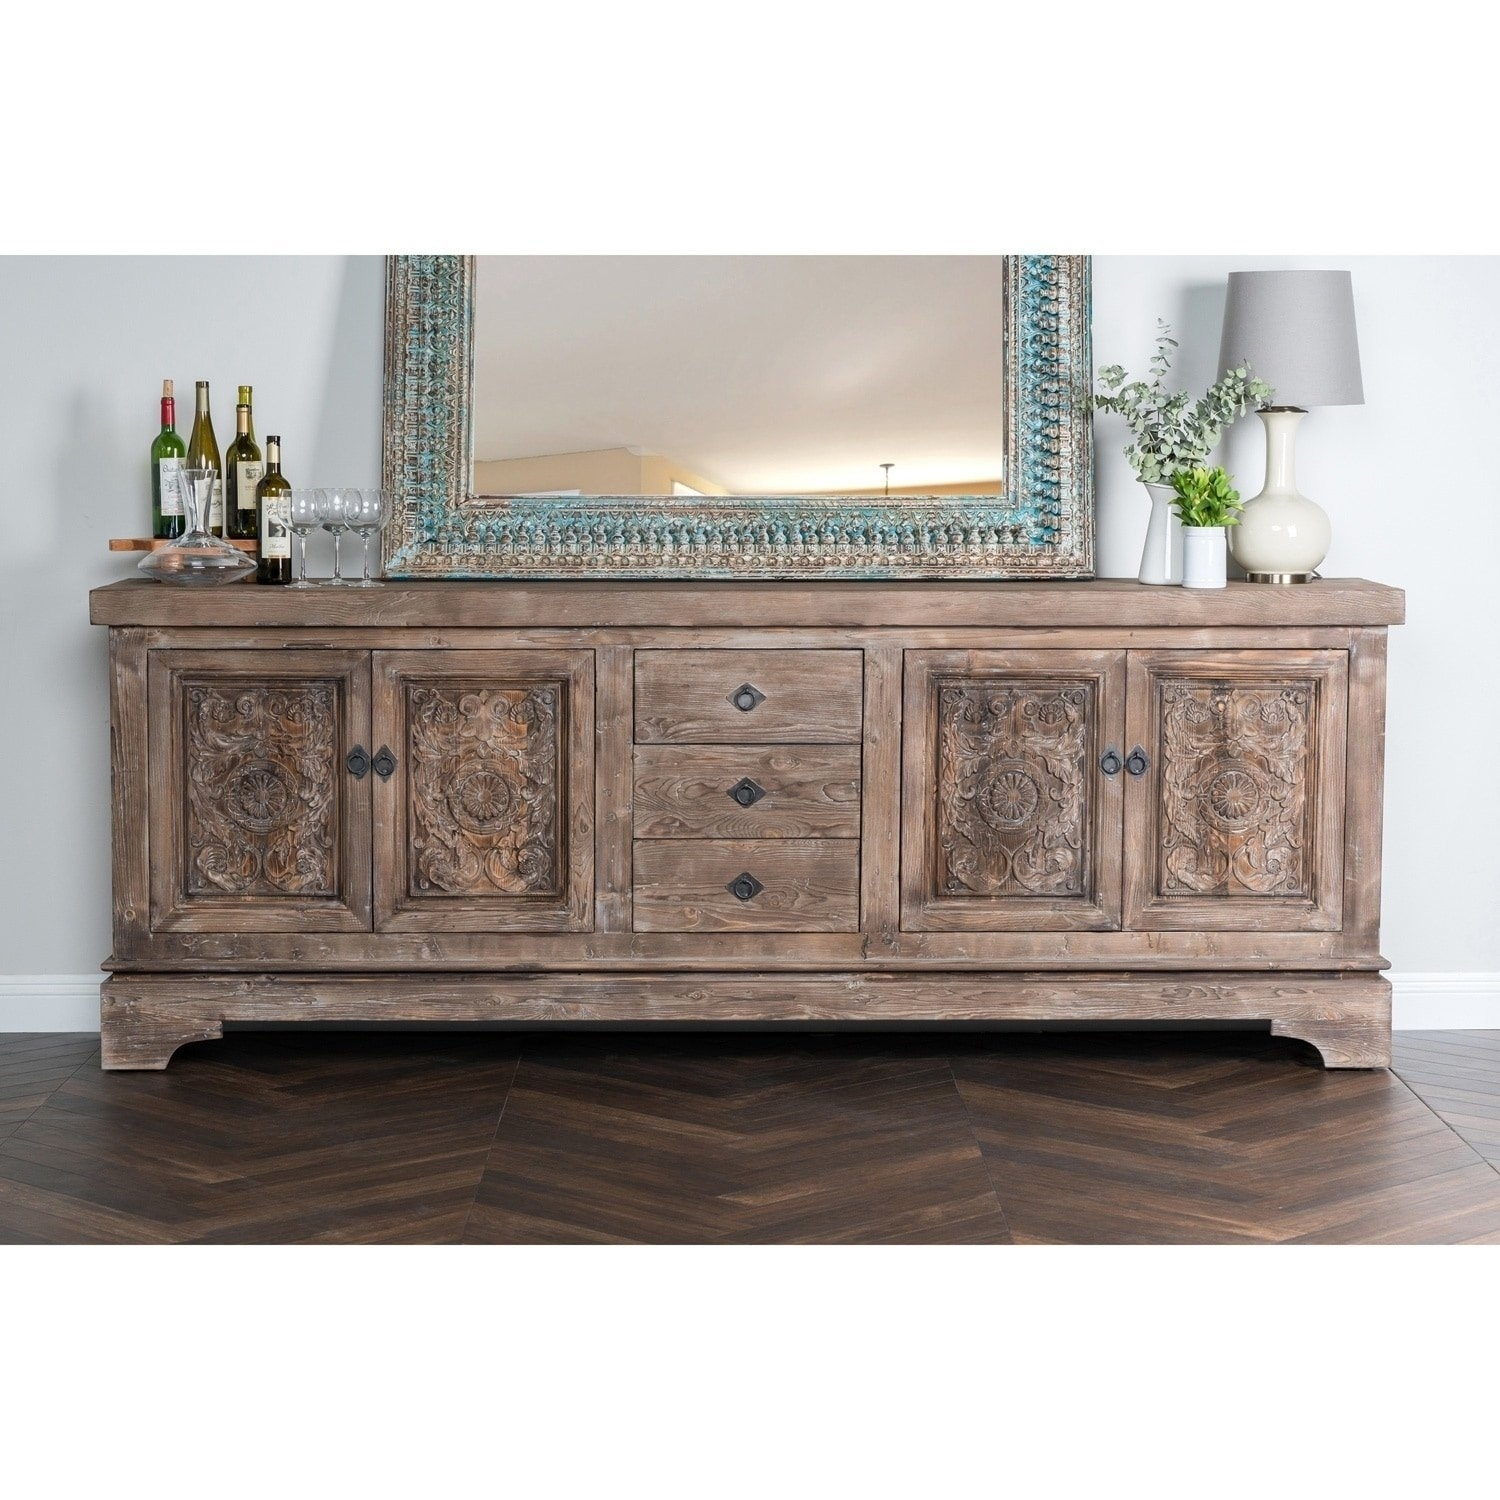 Shop Allen Rustic Taupe Reclaimed Pine 106 Inch Sideboardkosas With Regard To 2017 Reclaimed Pine & Iron 4 Door Sideboards (View 5 of 20)